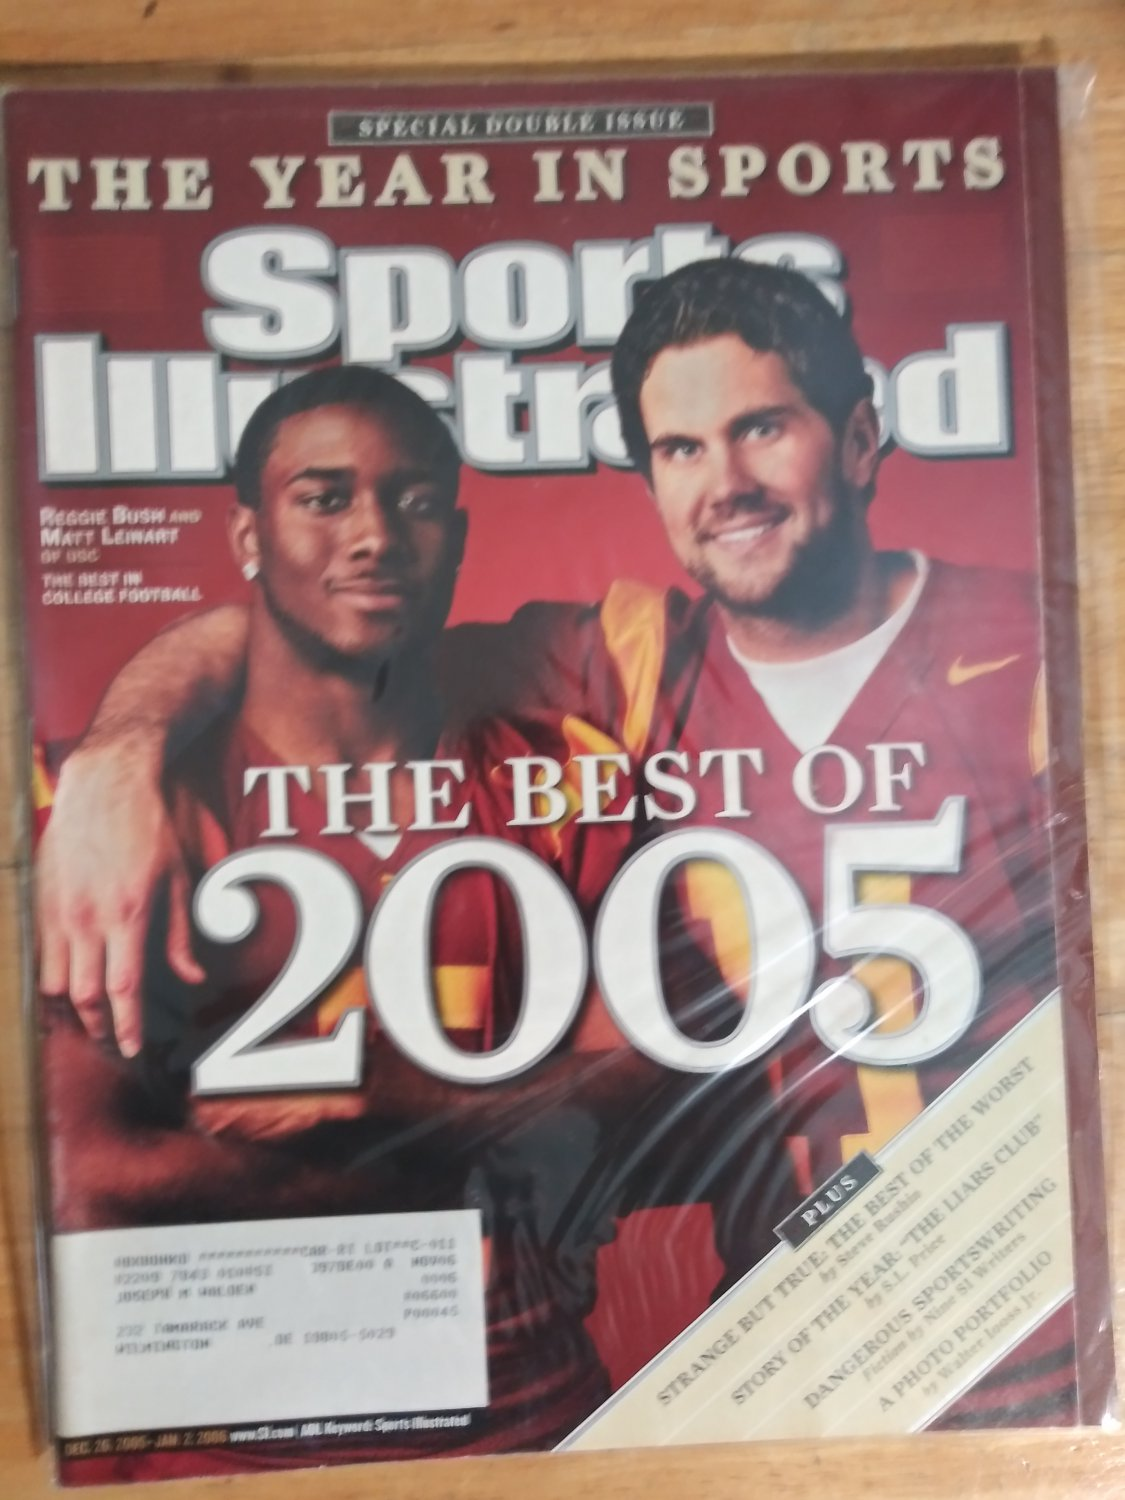 Sports Illustrated, December 26, 2005-January 2, 2006